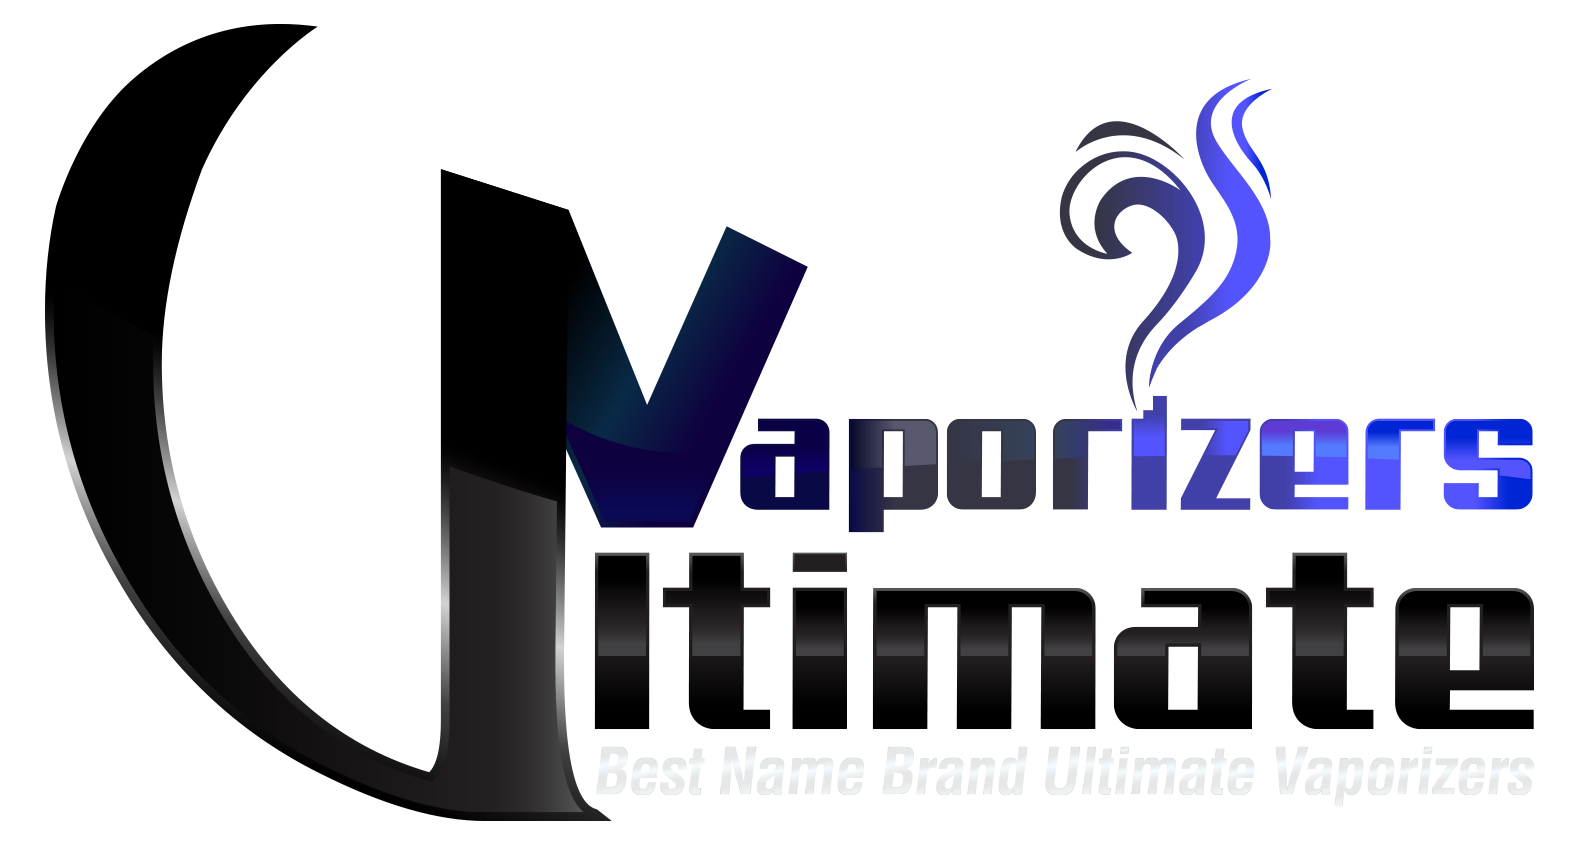 UltimateVaporizers.com